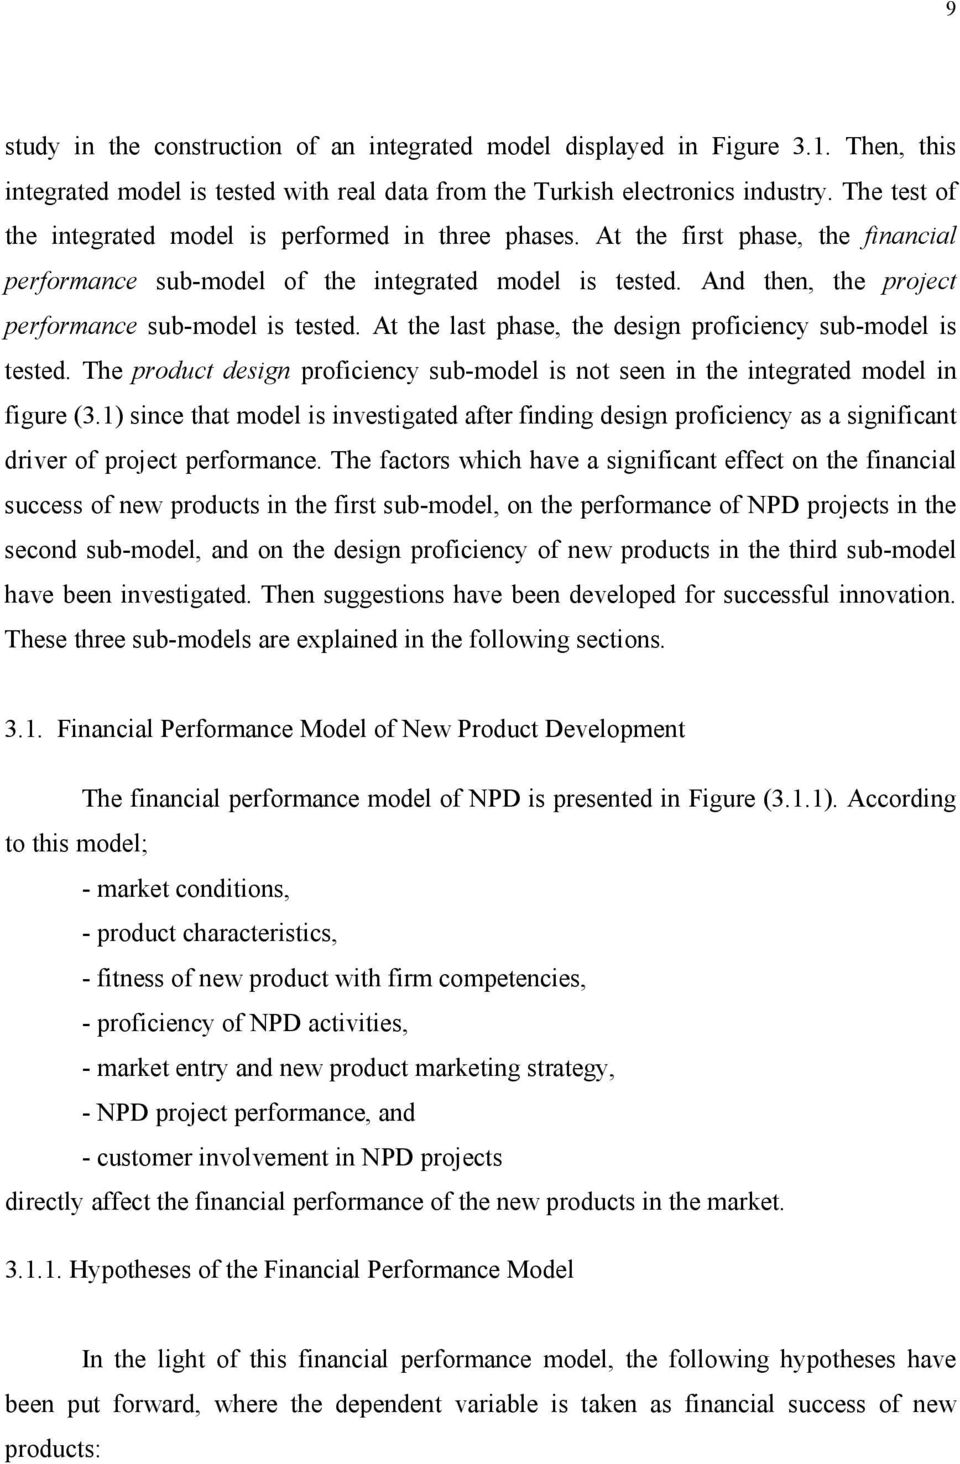 And then, the project performance sub-model is tested. At the last phase, the design proficiency sub-model is tested.